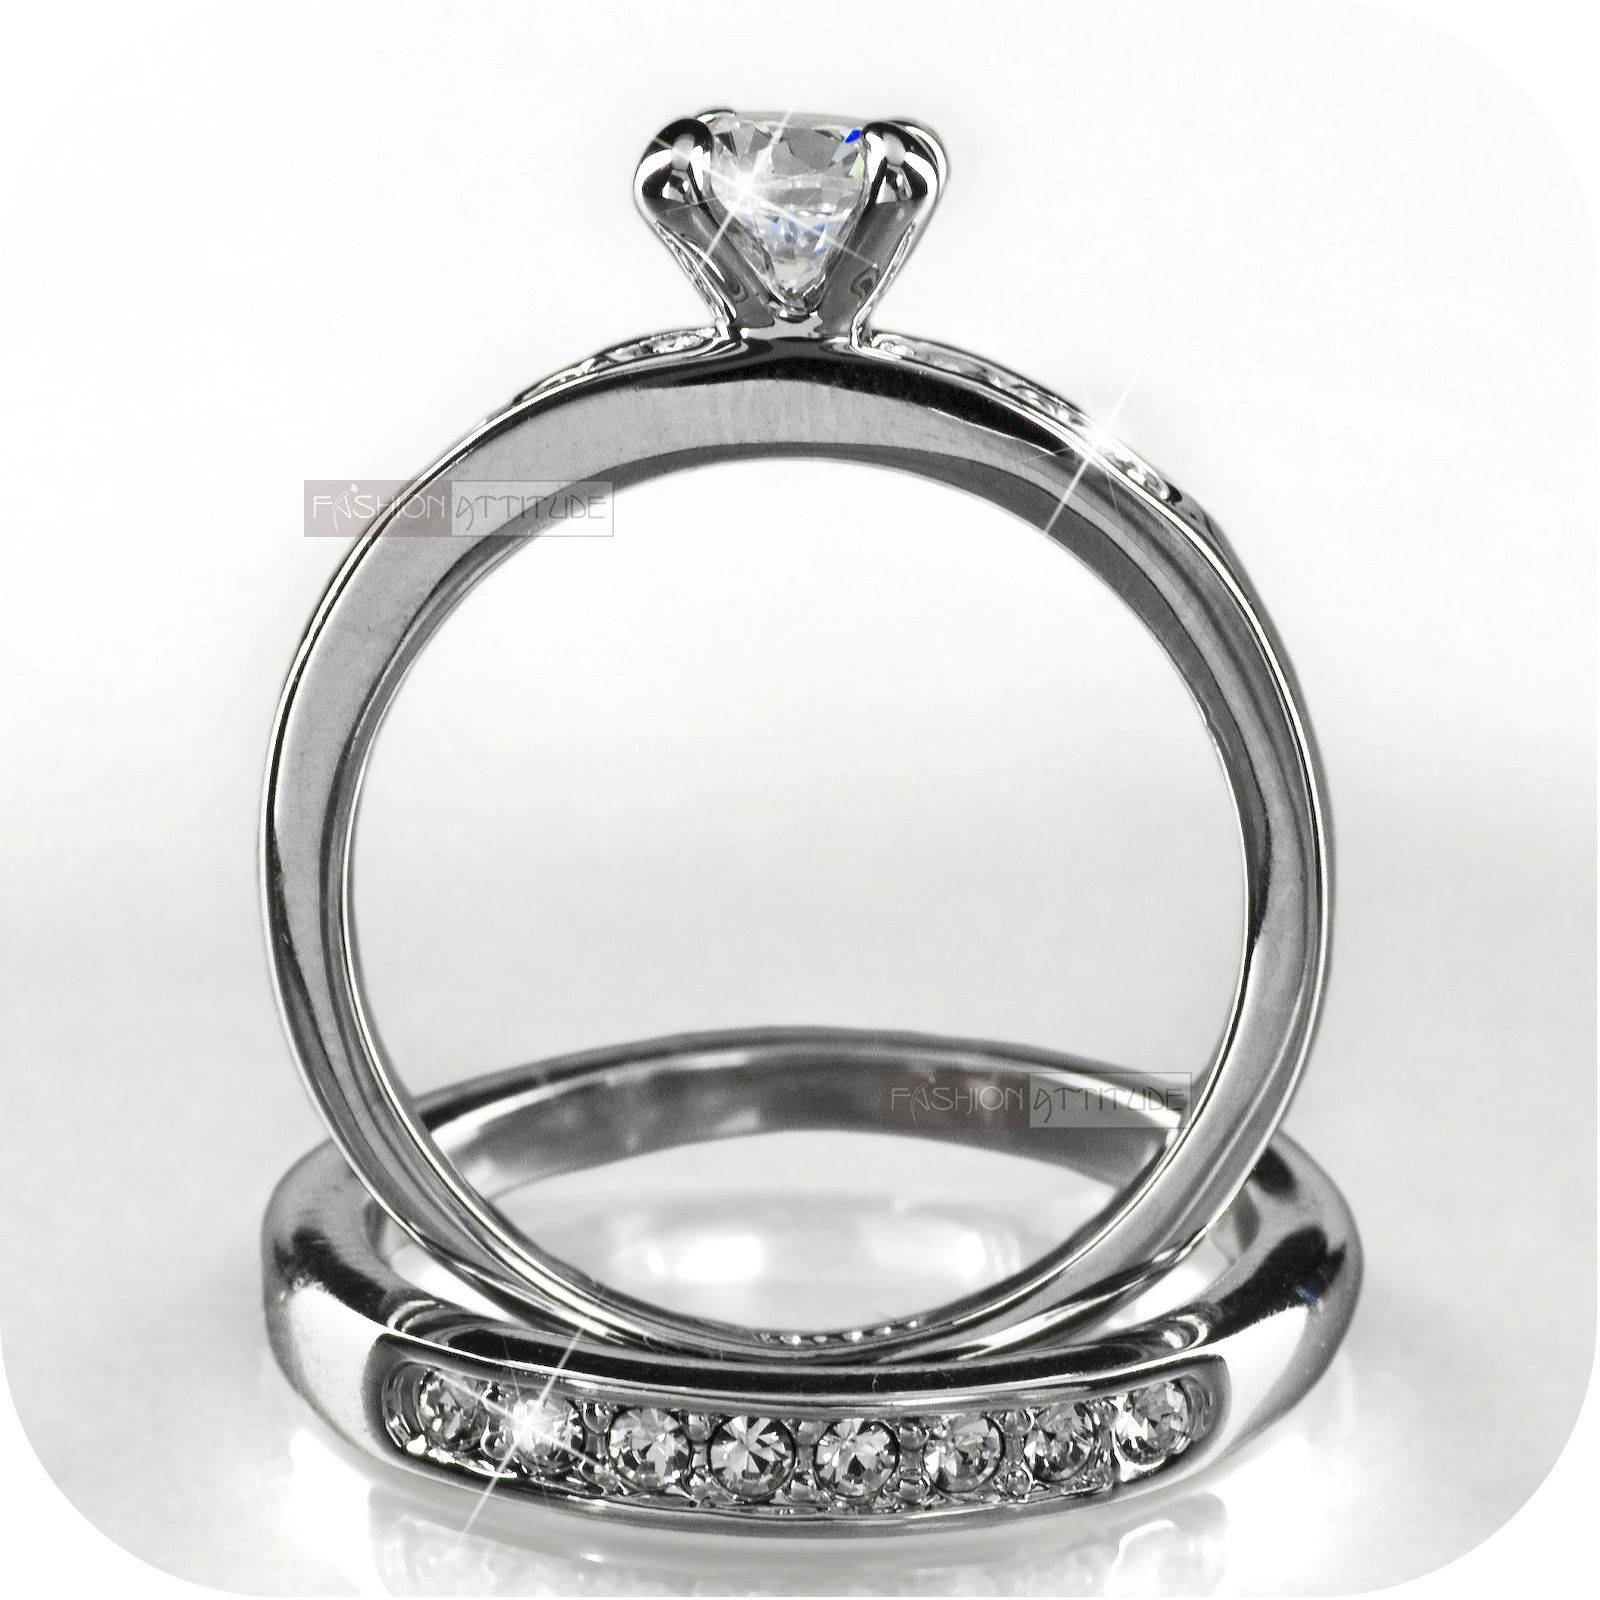 18K White Gold Gp Made With Swarovski Crystal Wedding Ring Set Us For Swarovski Crystal Wedding Rings (View 2 of 15)